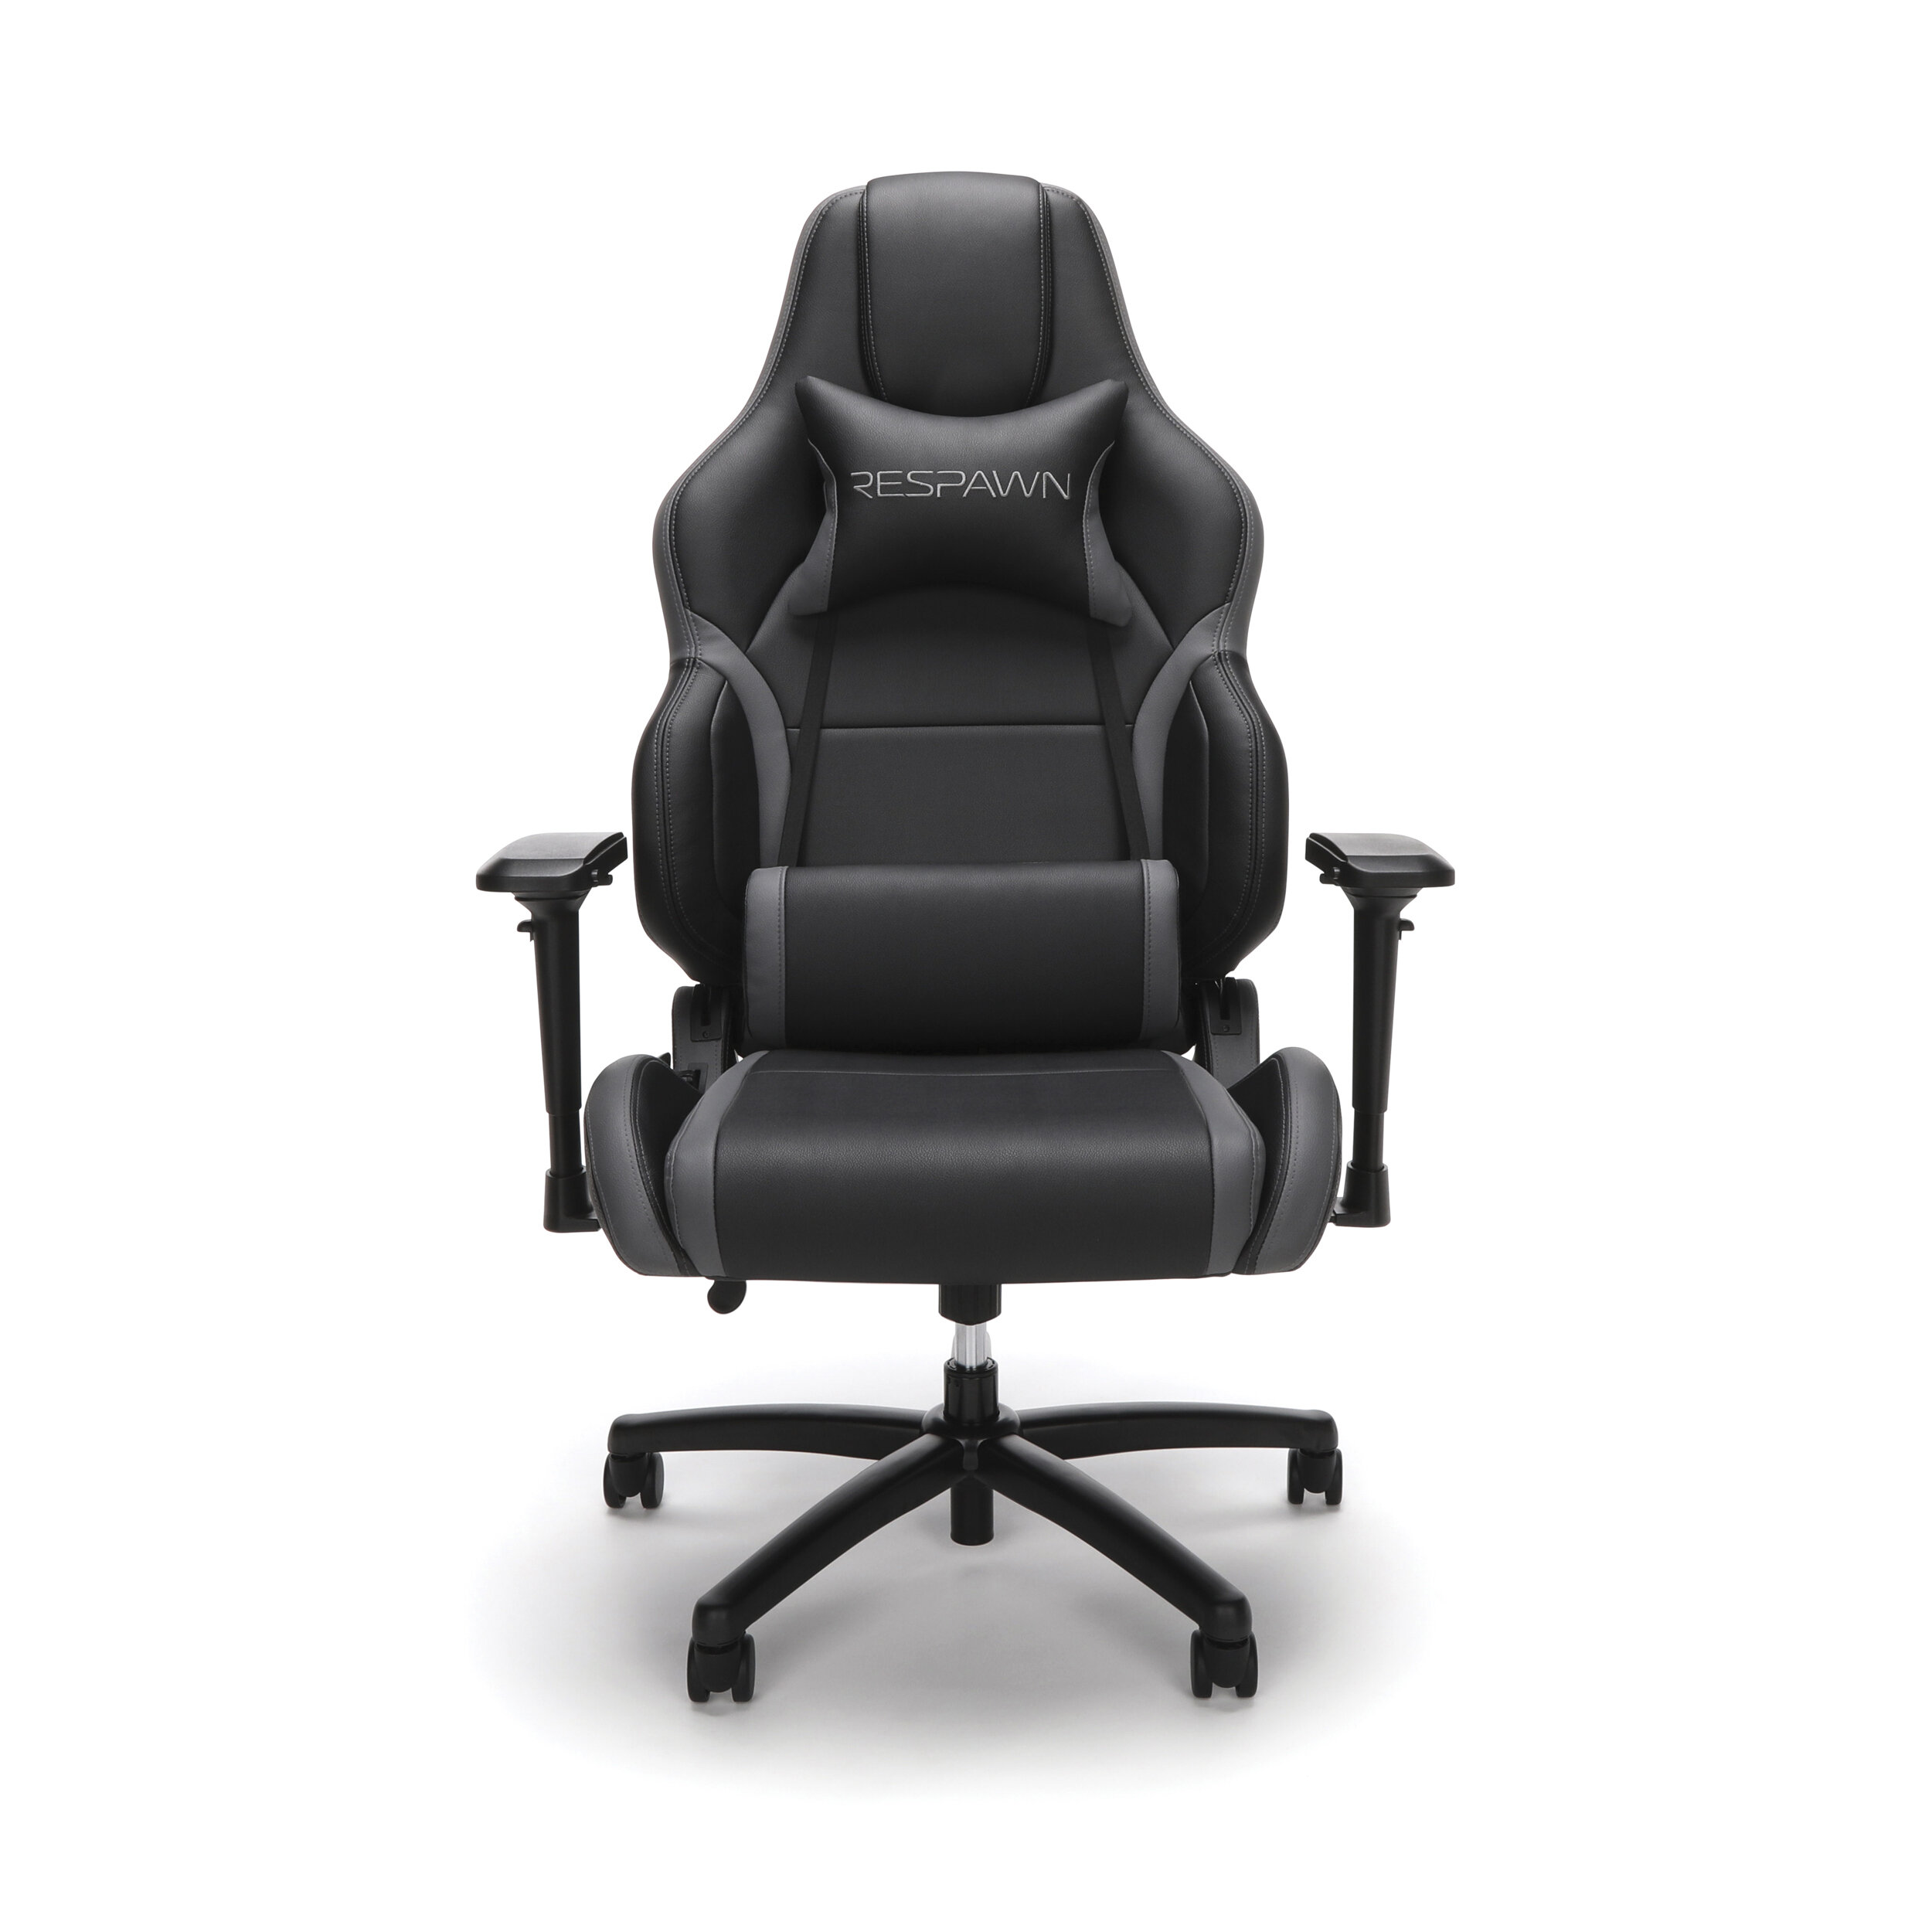 Astonishing Respawn Big And Tall Pc Racing Game Chair Reviews Wayfair Pabps2019 Chair Design Images Pabps2019Com